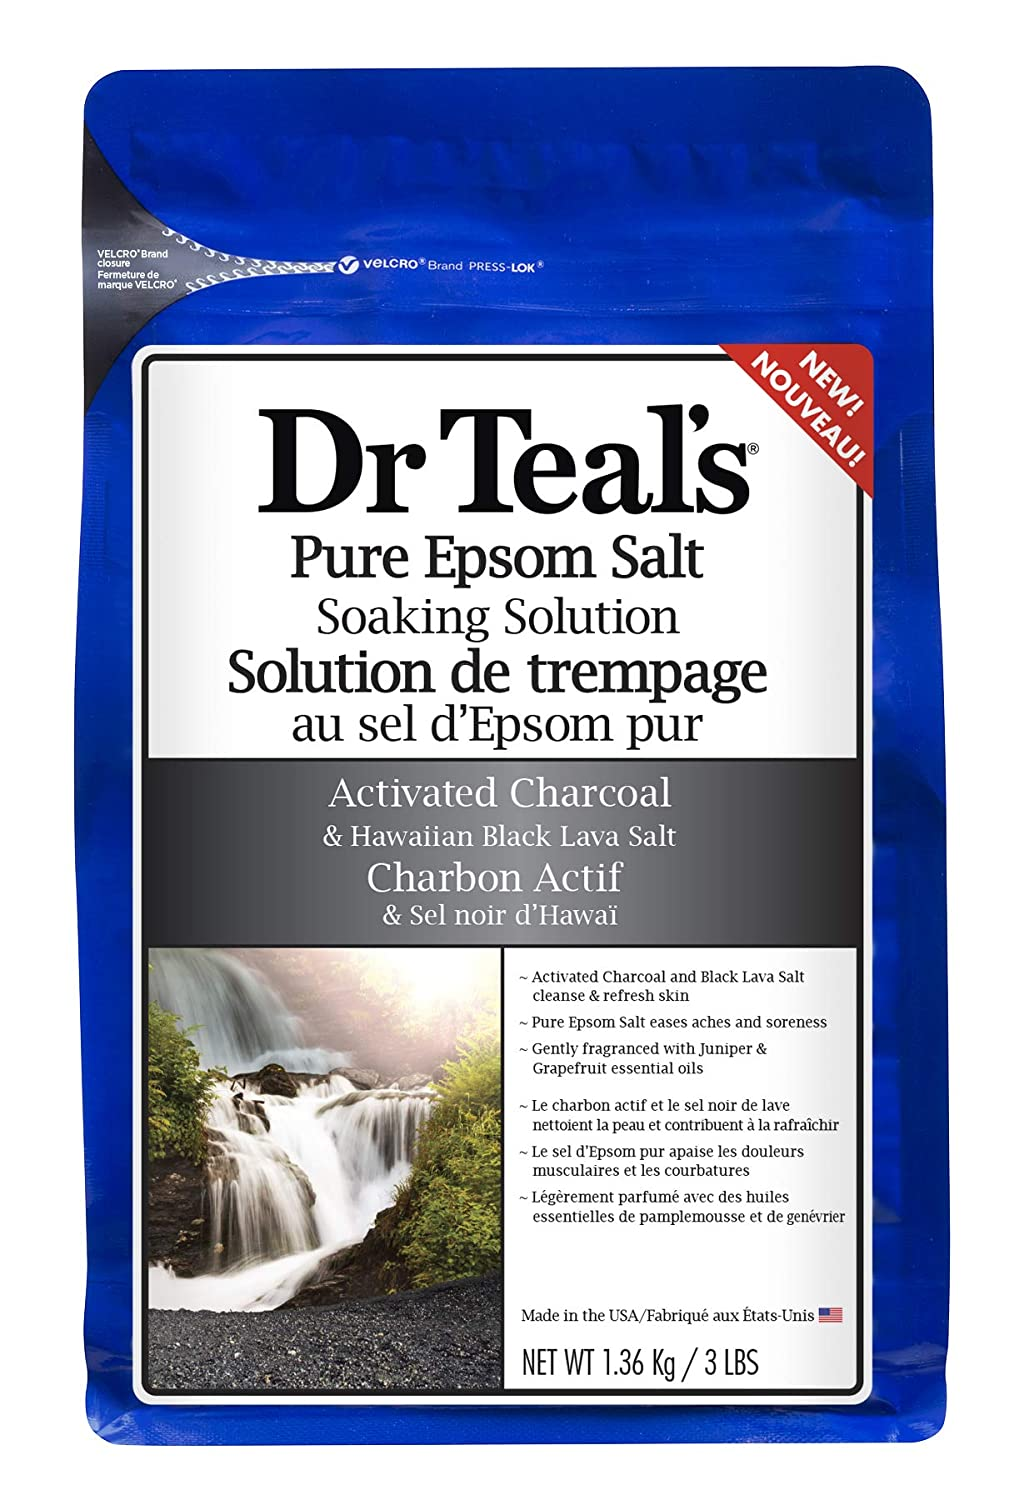 Dr Teal's Activated Charcoal Epsom Salt, 1.36 Kilogram PDC Brands